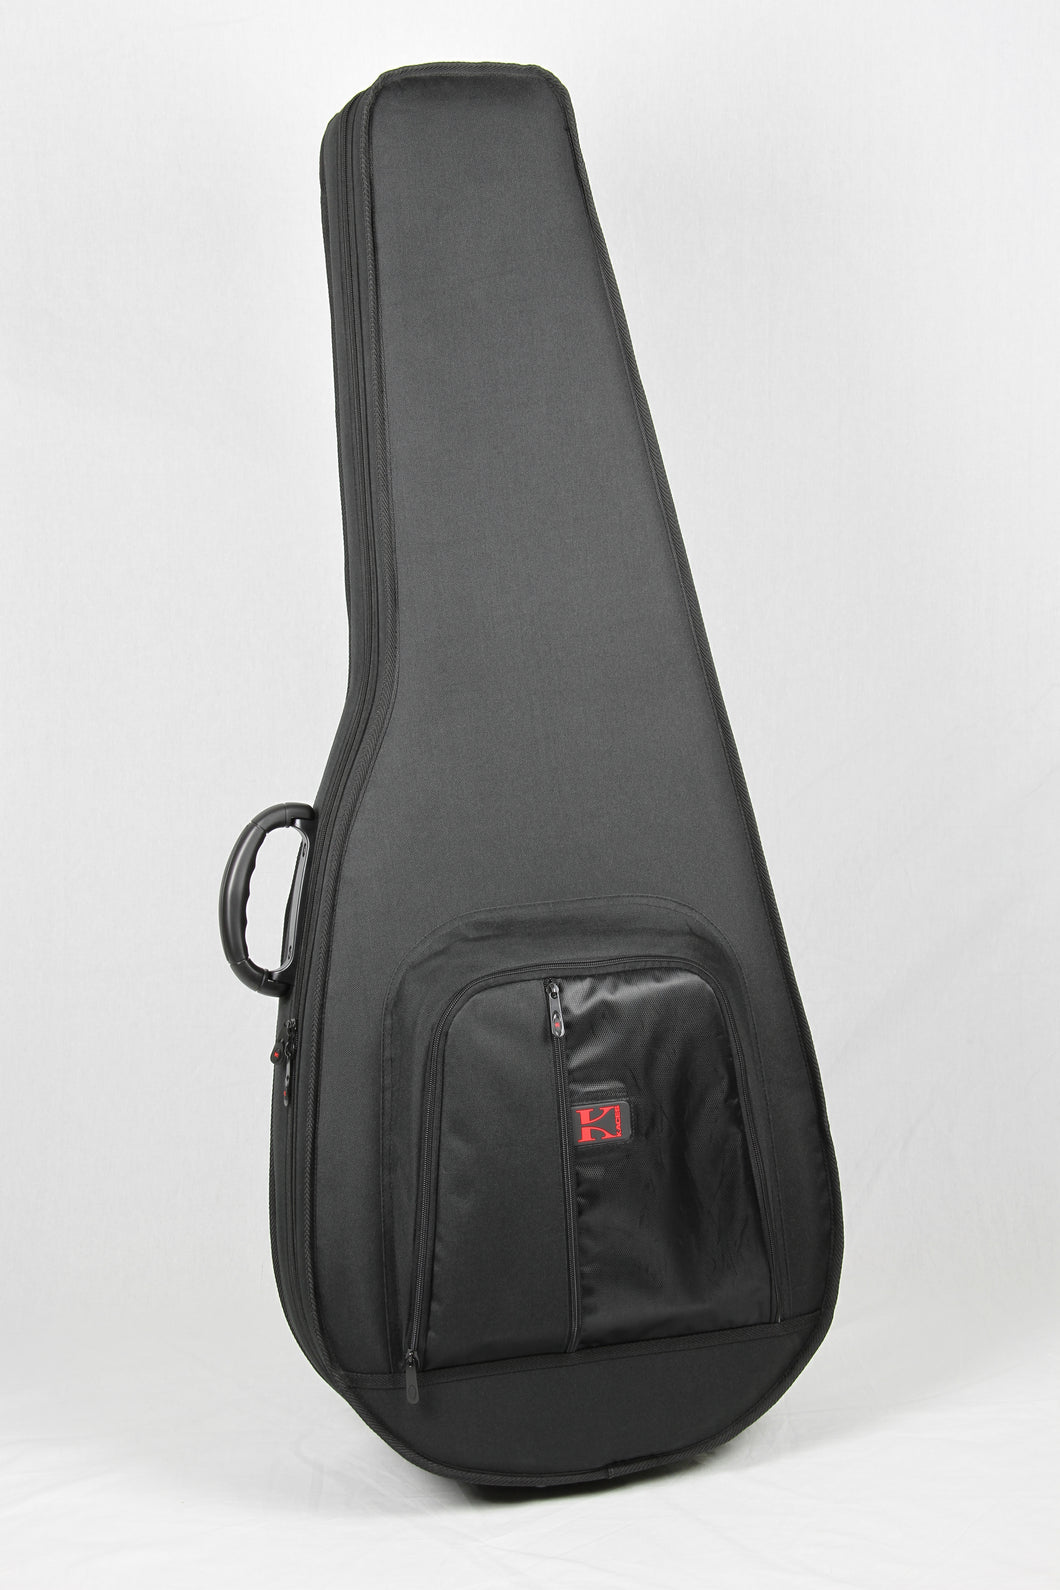 Xpress Series Polyfoam Guitar Case, Classical